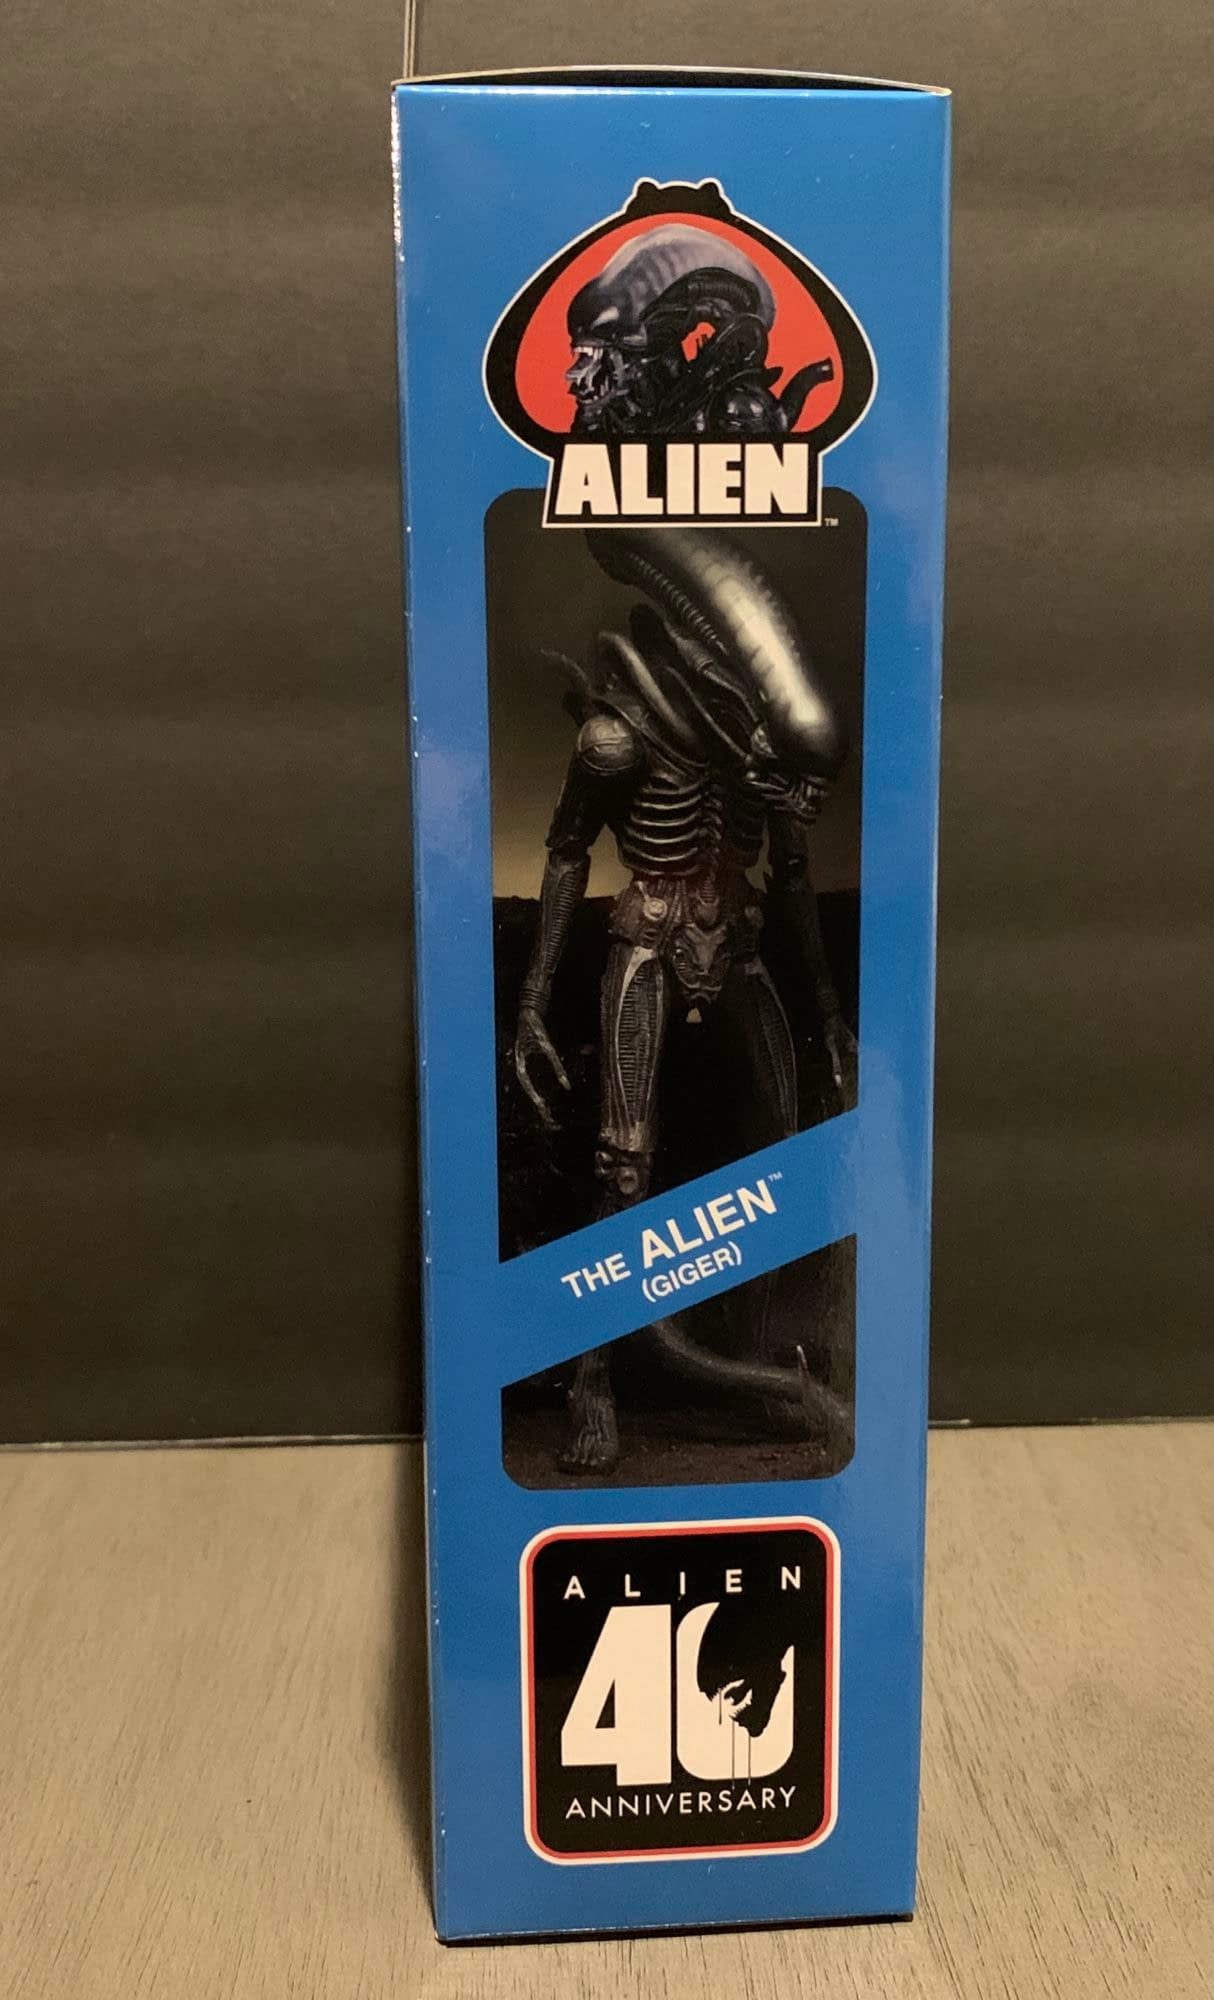 NECA's Final Wave Of Alien 40th Anniversary Figures Is Hitting Stores